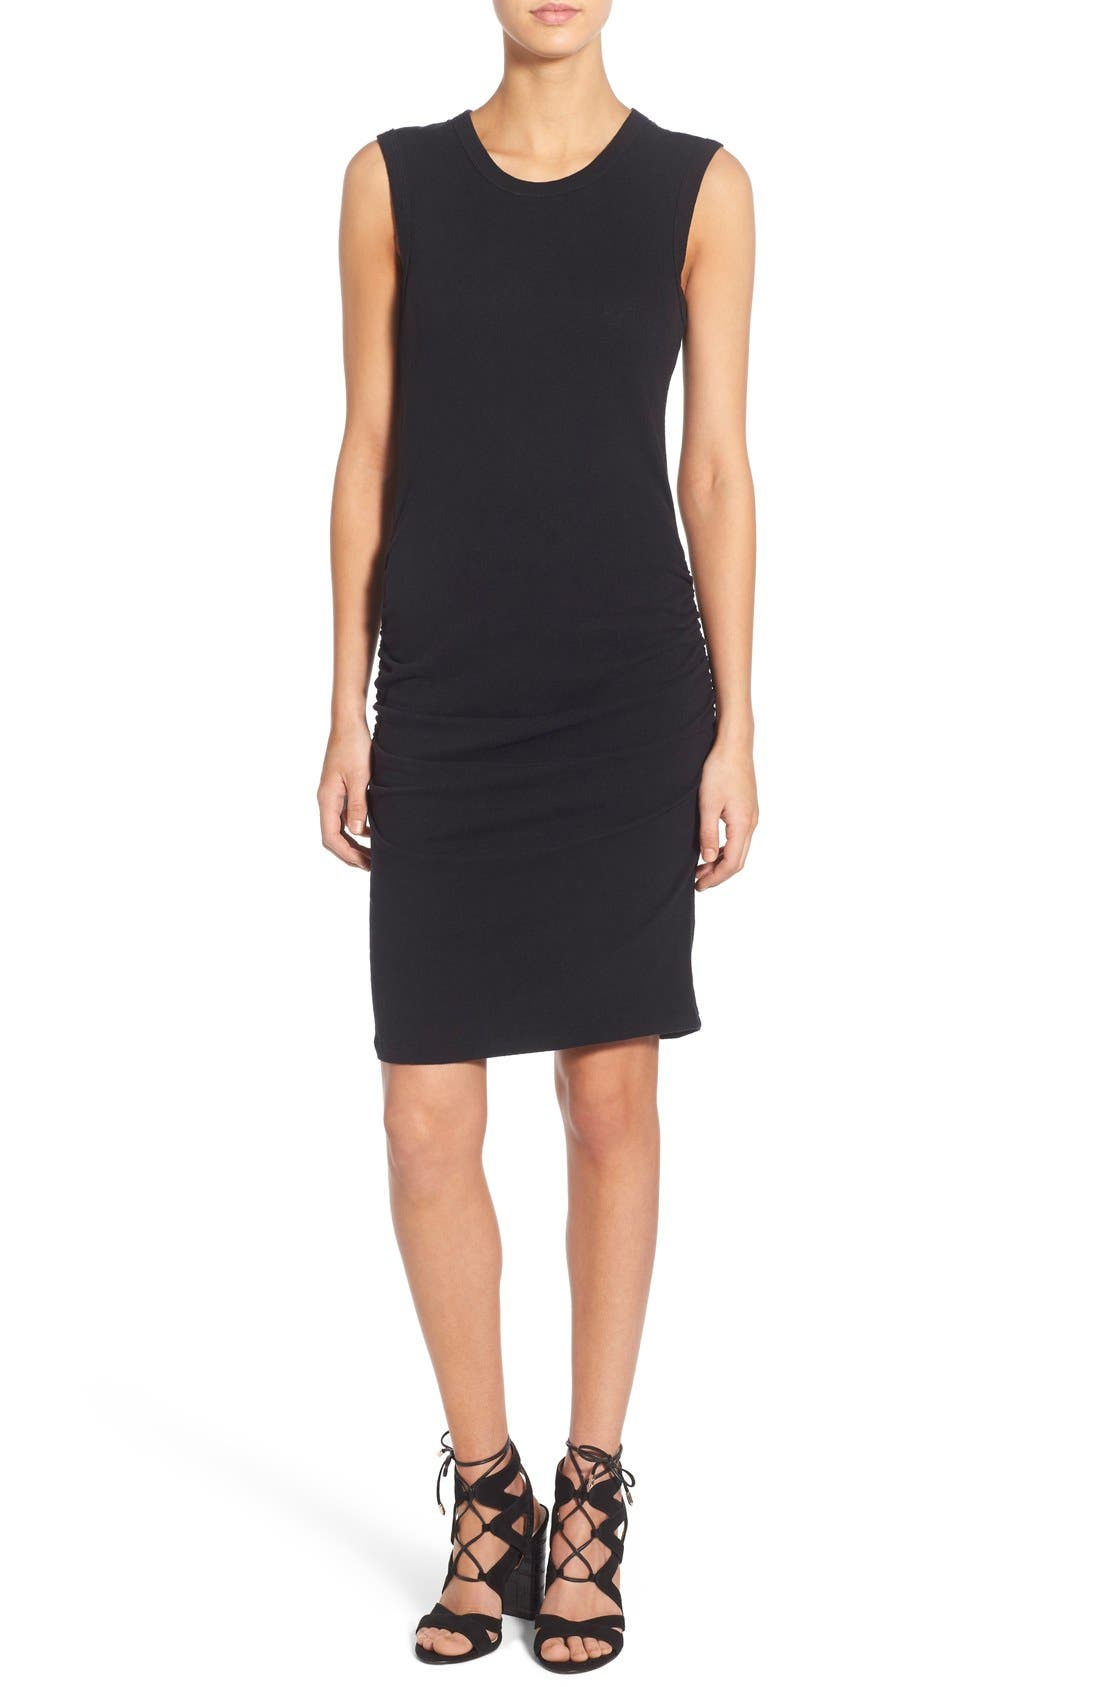 Alternate Image 1 Selected - James Perse Ruched Tank Dress